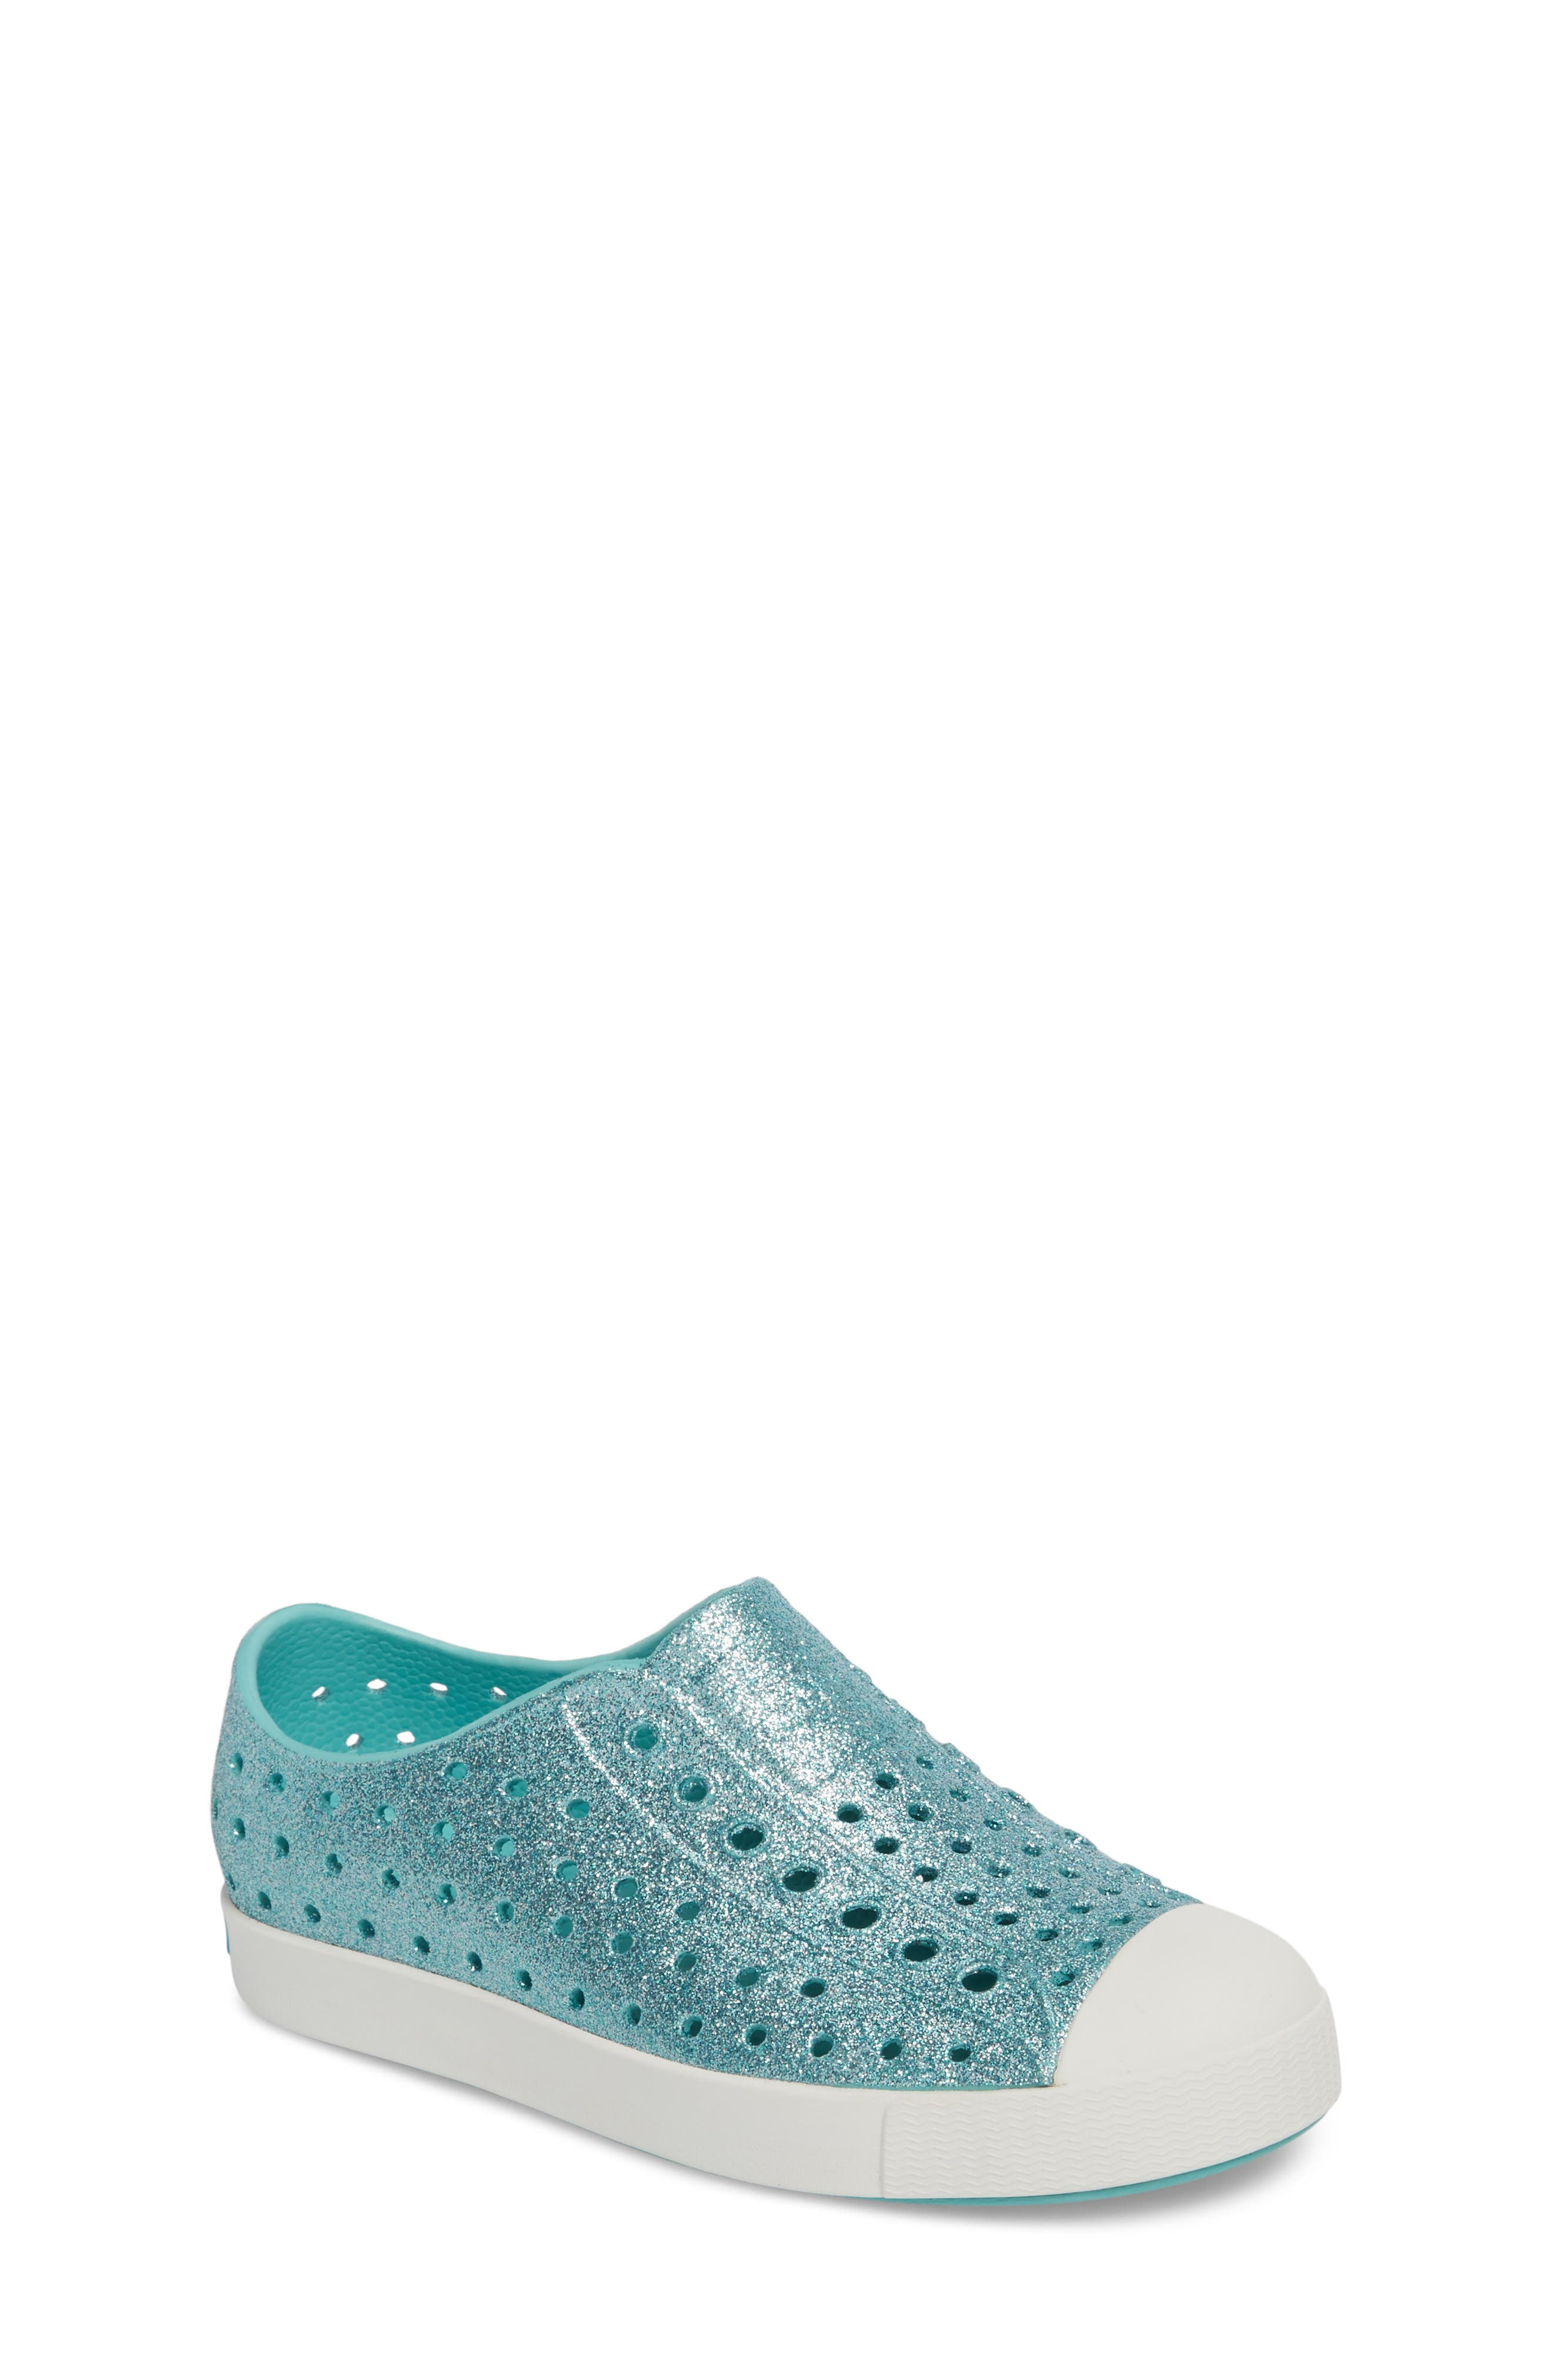 Native Shoes Jefferson - Bling Glitter Slip-On Sneaker (Baby, Walker, Toddler & Little Kid)